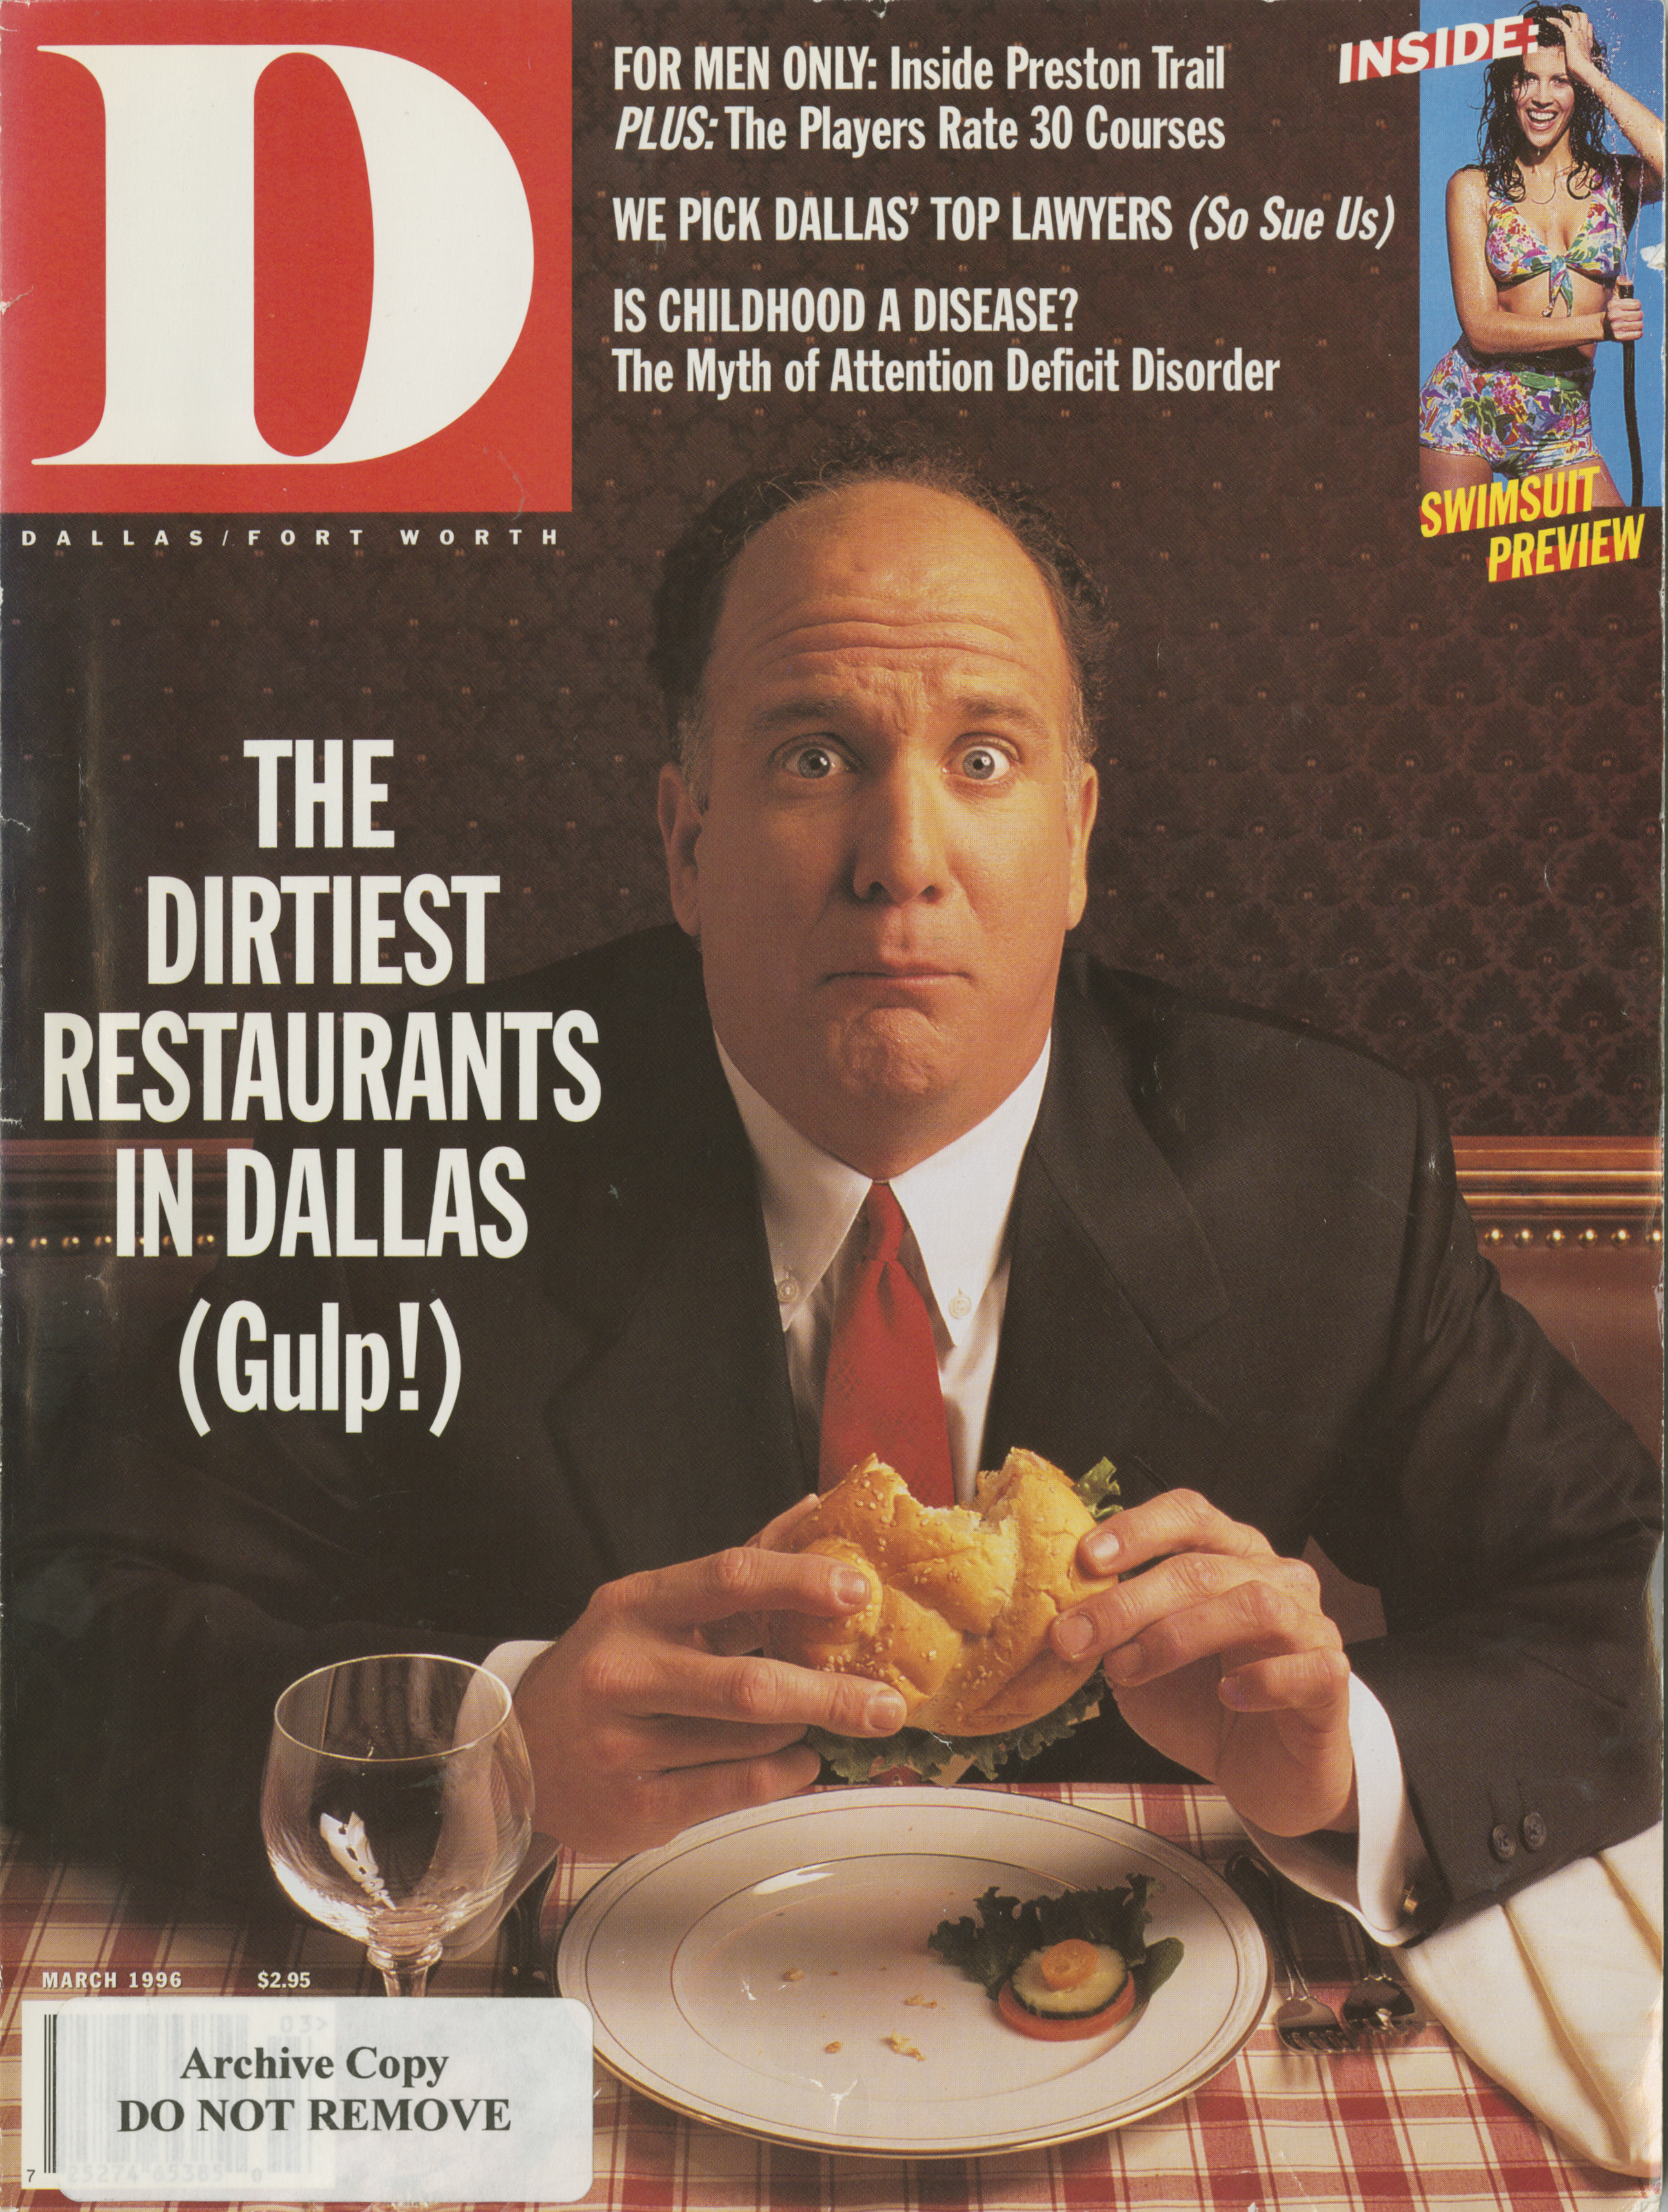 March 1996 cover